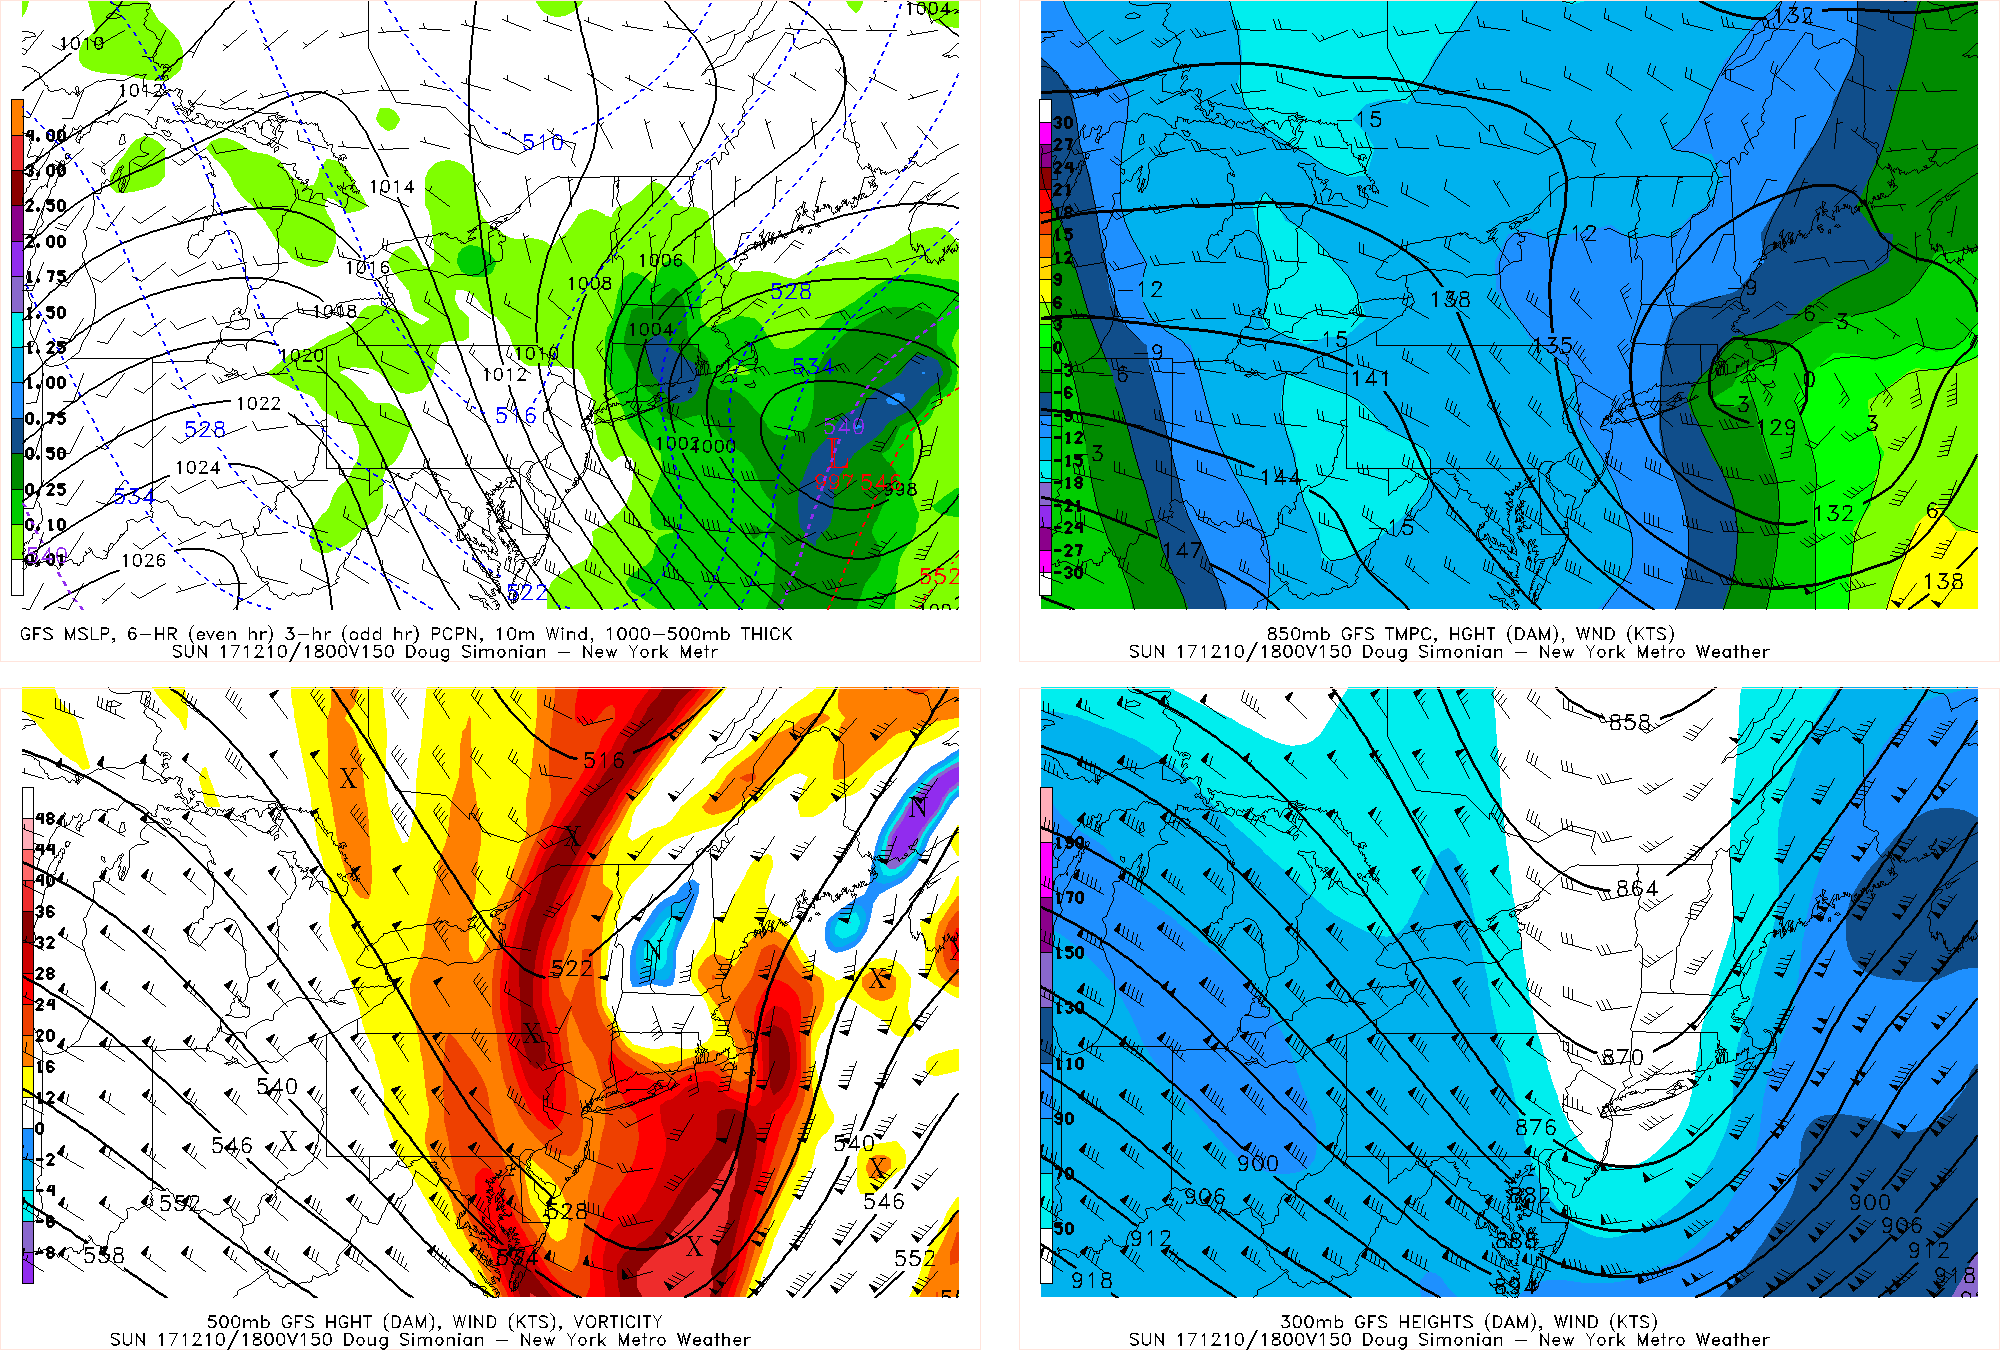 GFS model showing the polar shortwave amplifying, resulting in more deeper low developing just offshore Sunday